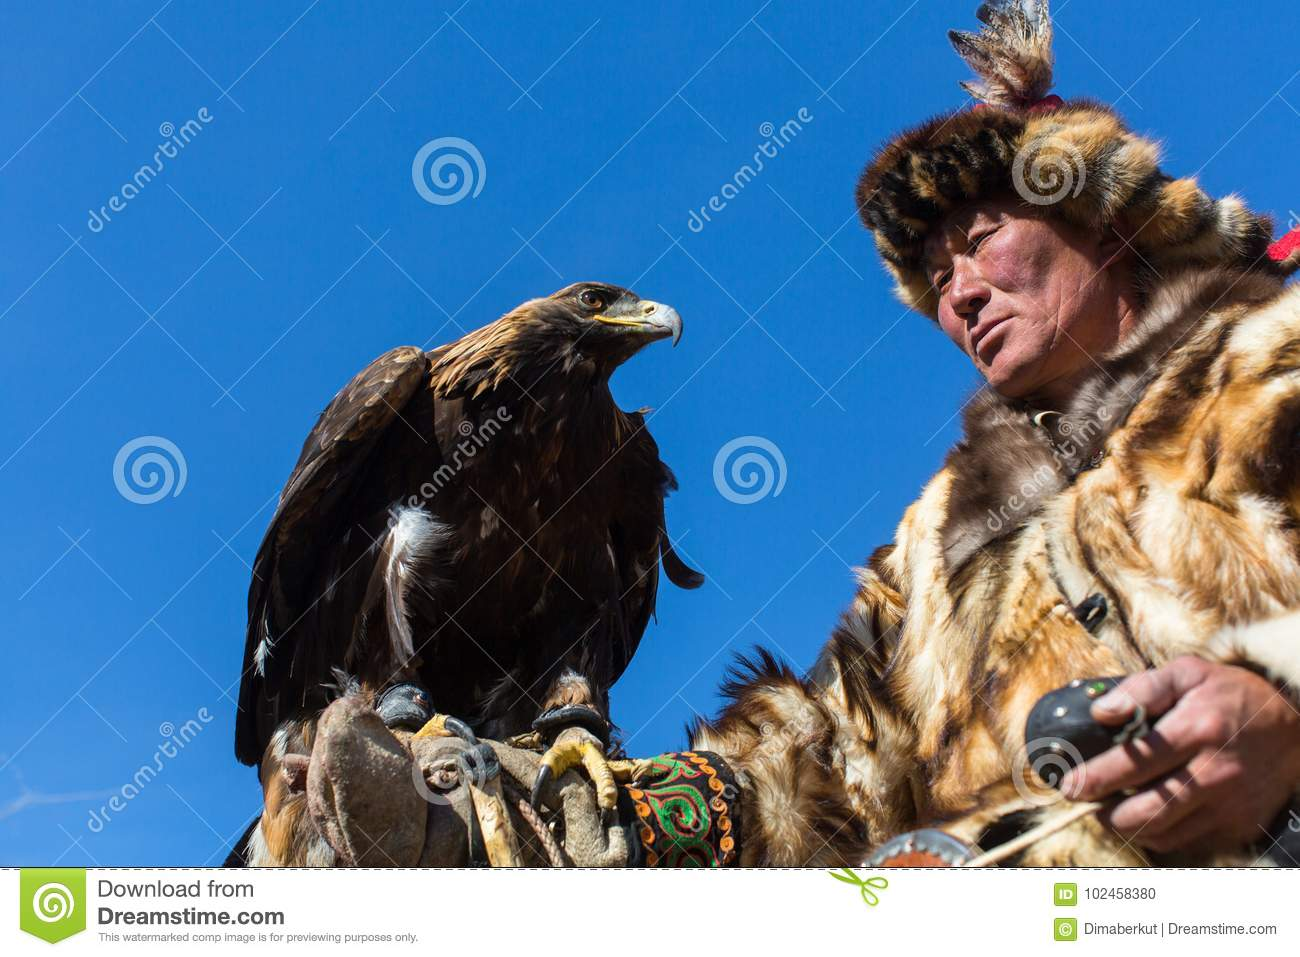 Mongolian Kazakh Eagle Hunter traditional clothing, holding a golden eagle on his arm